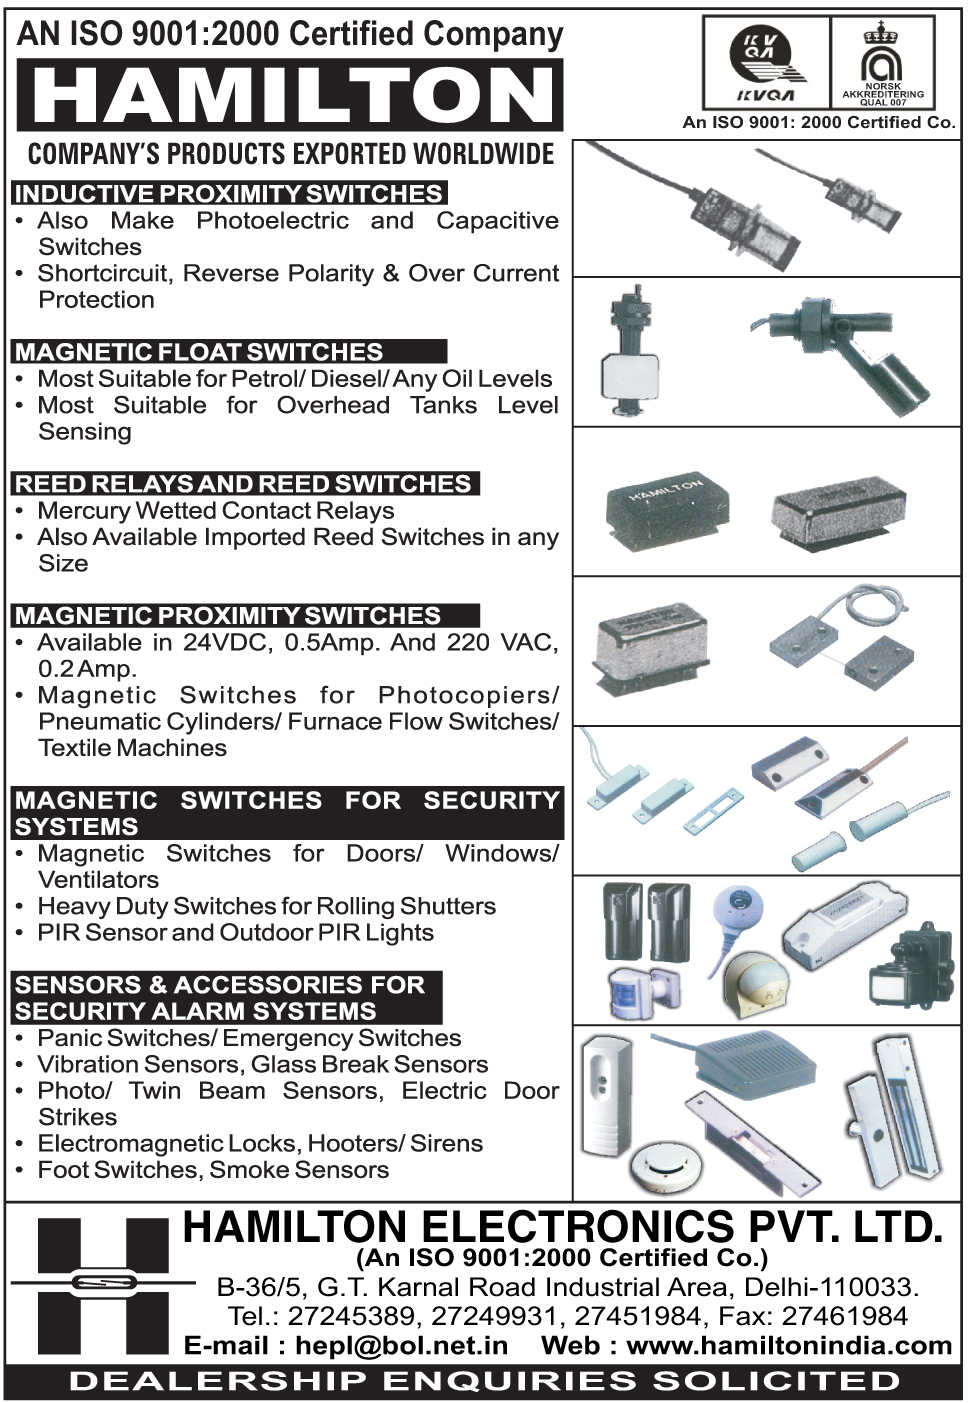 Switches, Energy Saving Devices, Float Switches, Liquid Level Controllers, Process Control Equipment, Proximity Switches, Reed Relays, Security Systems, Sensors, Security Alarm Systems, Switches, Reed Switches, PIR Sensor, Panic Switches, Emergency Switches, Vibration Sensors, Electromagnetic Locks, Switch, Electronic Switches, Induvtive Proximity Switches, Magnetic Float Switches, Magnetic Proximity Switches, Photoelectric Switches, Capacitive Switches, Security Alarm System Sensors, Security Alarm System Accessories, Security Alarm System Accessory, Glass Break Sensors, Photo Beam Sensors, Twin Beam Sensors, Electric Door Strikes, Hooters, Sirens, Foot Switches, Smoke Sensors, Magnetic Switches for Doors, Magnetic Switches for Windows, Magnetic Switches for Ventilators, Heavy Duty Switches for Rolling Shutters, Outdoor PIR Lights